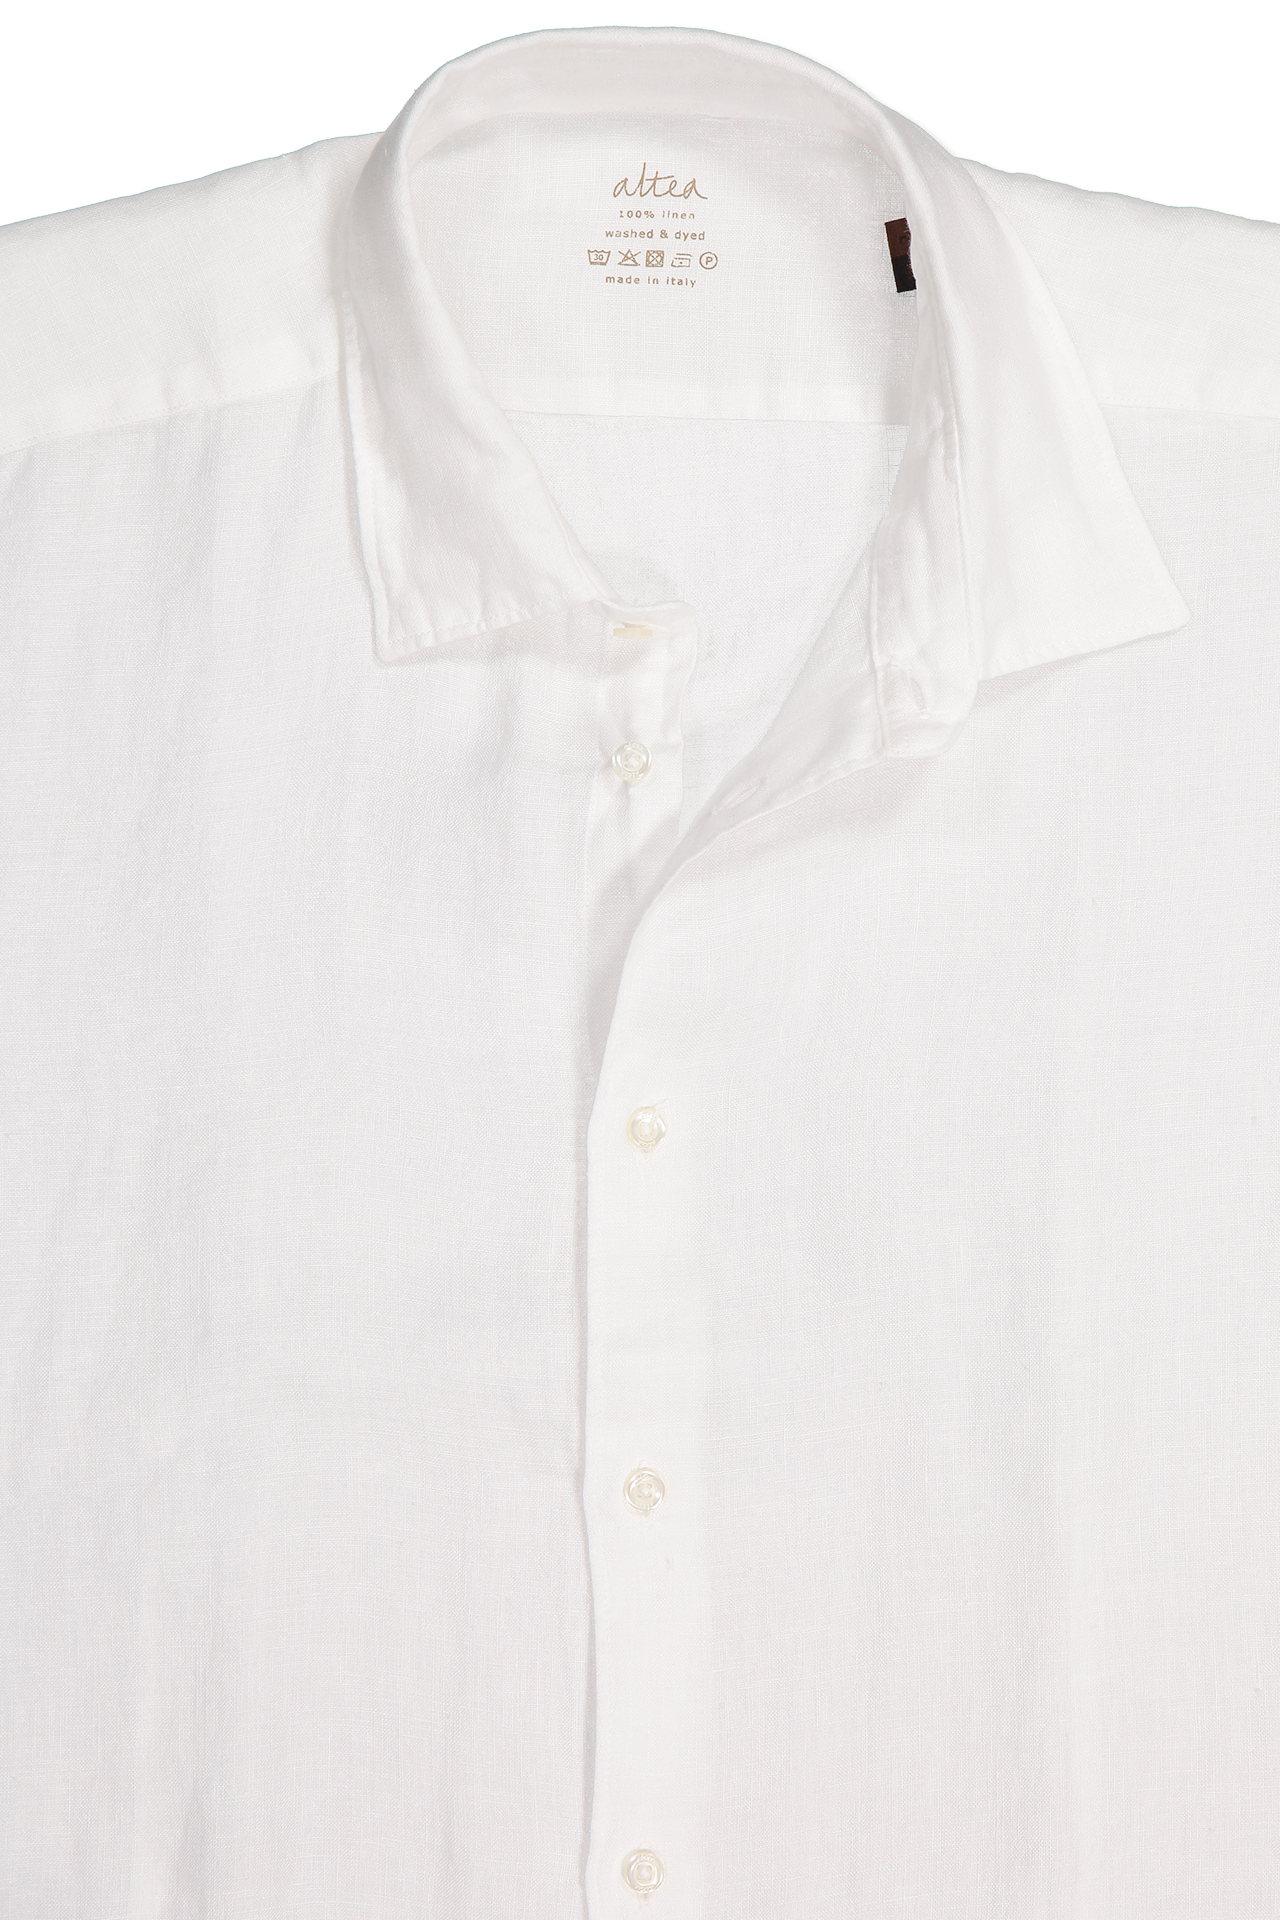 Linen Garment Dyed Shirt